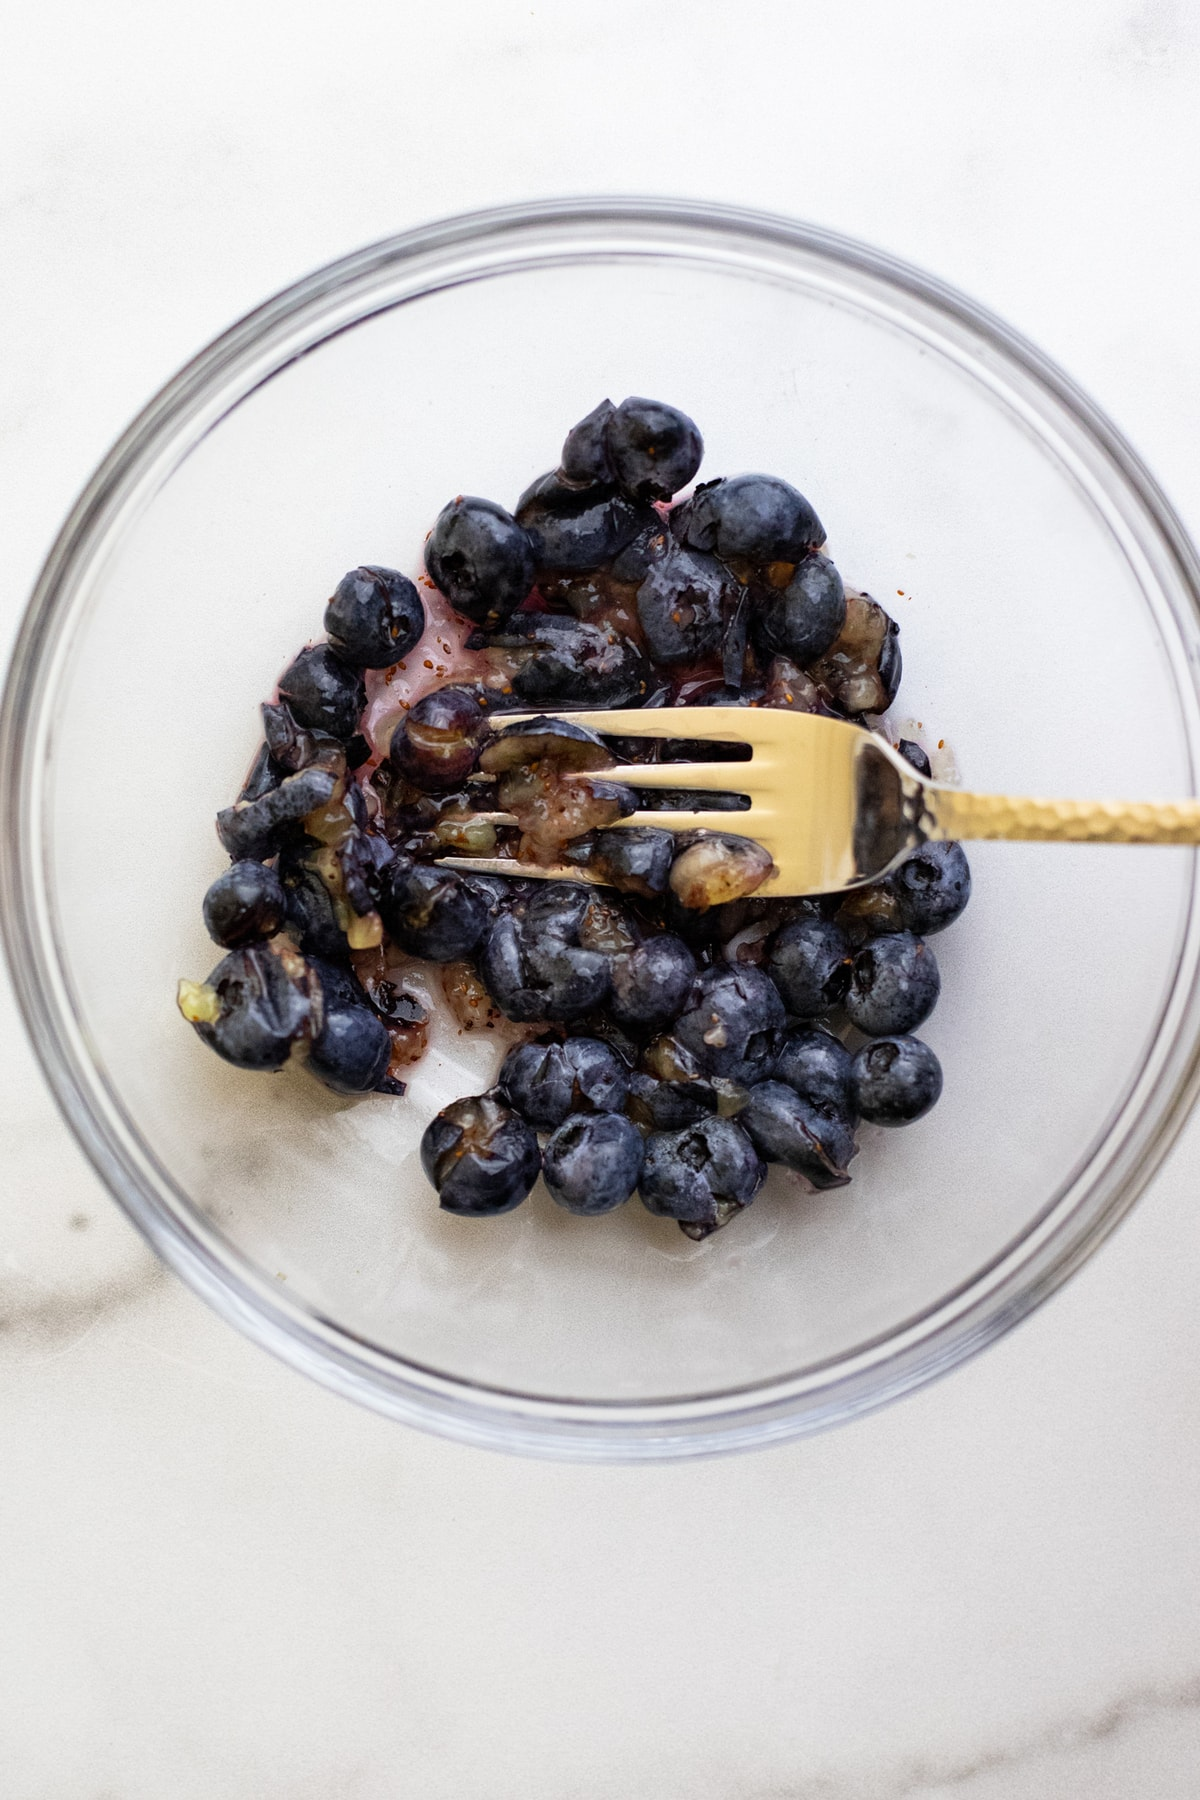 A fork mashing blueberries in a clear glass bowl.